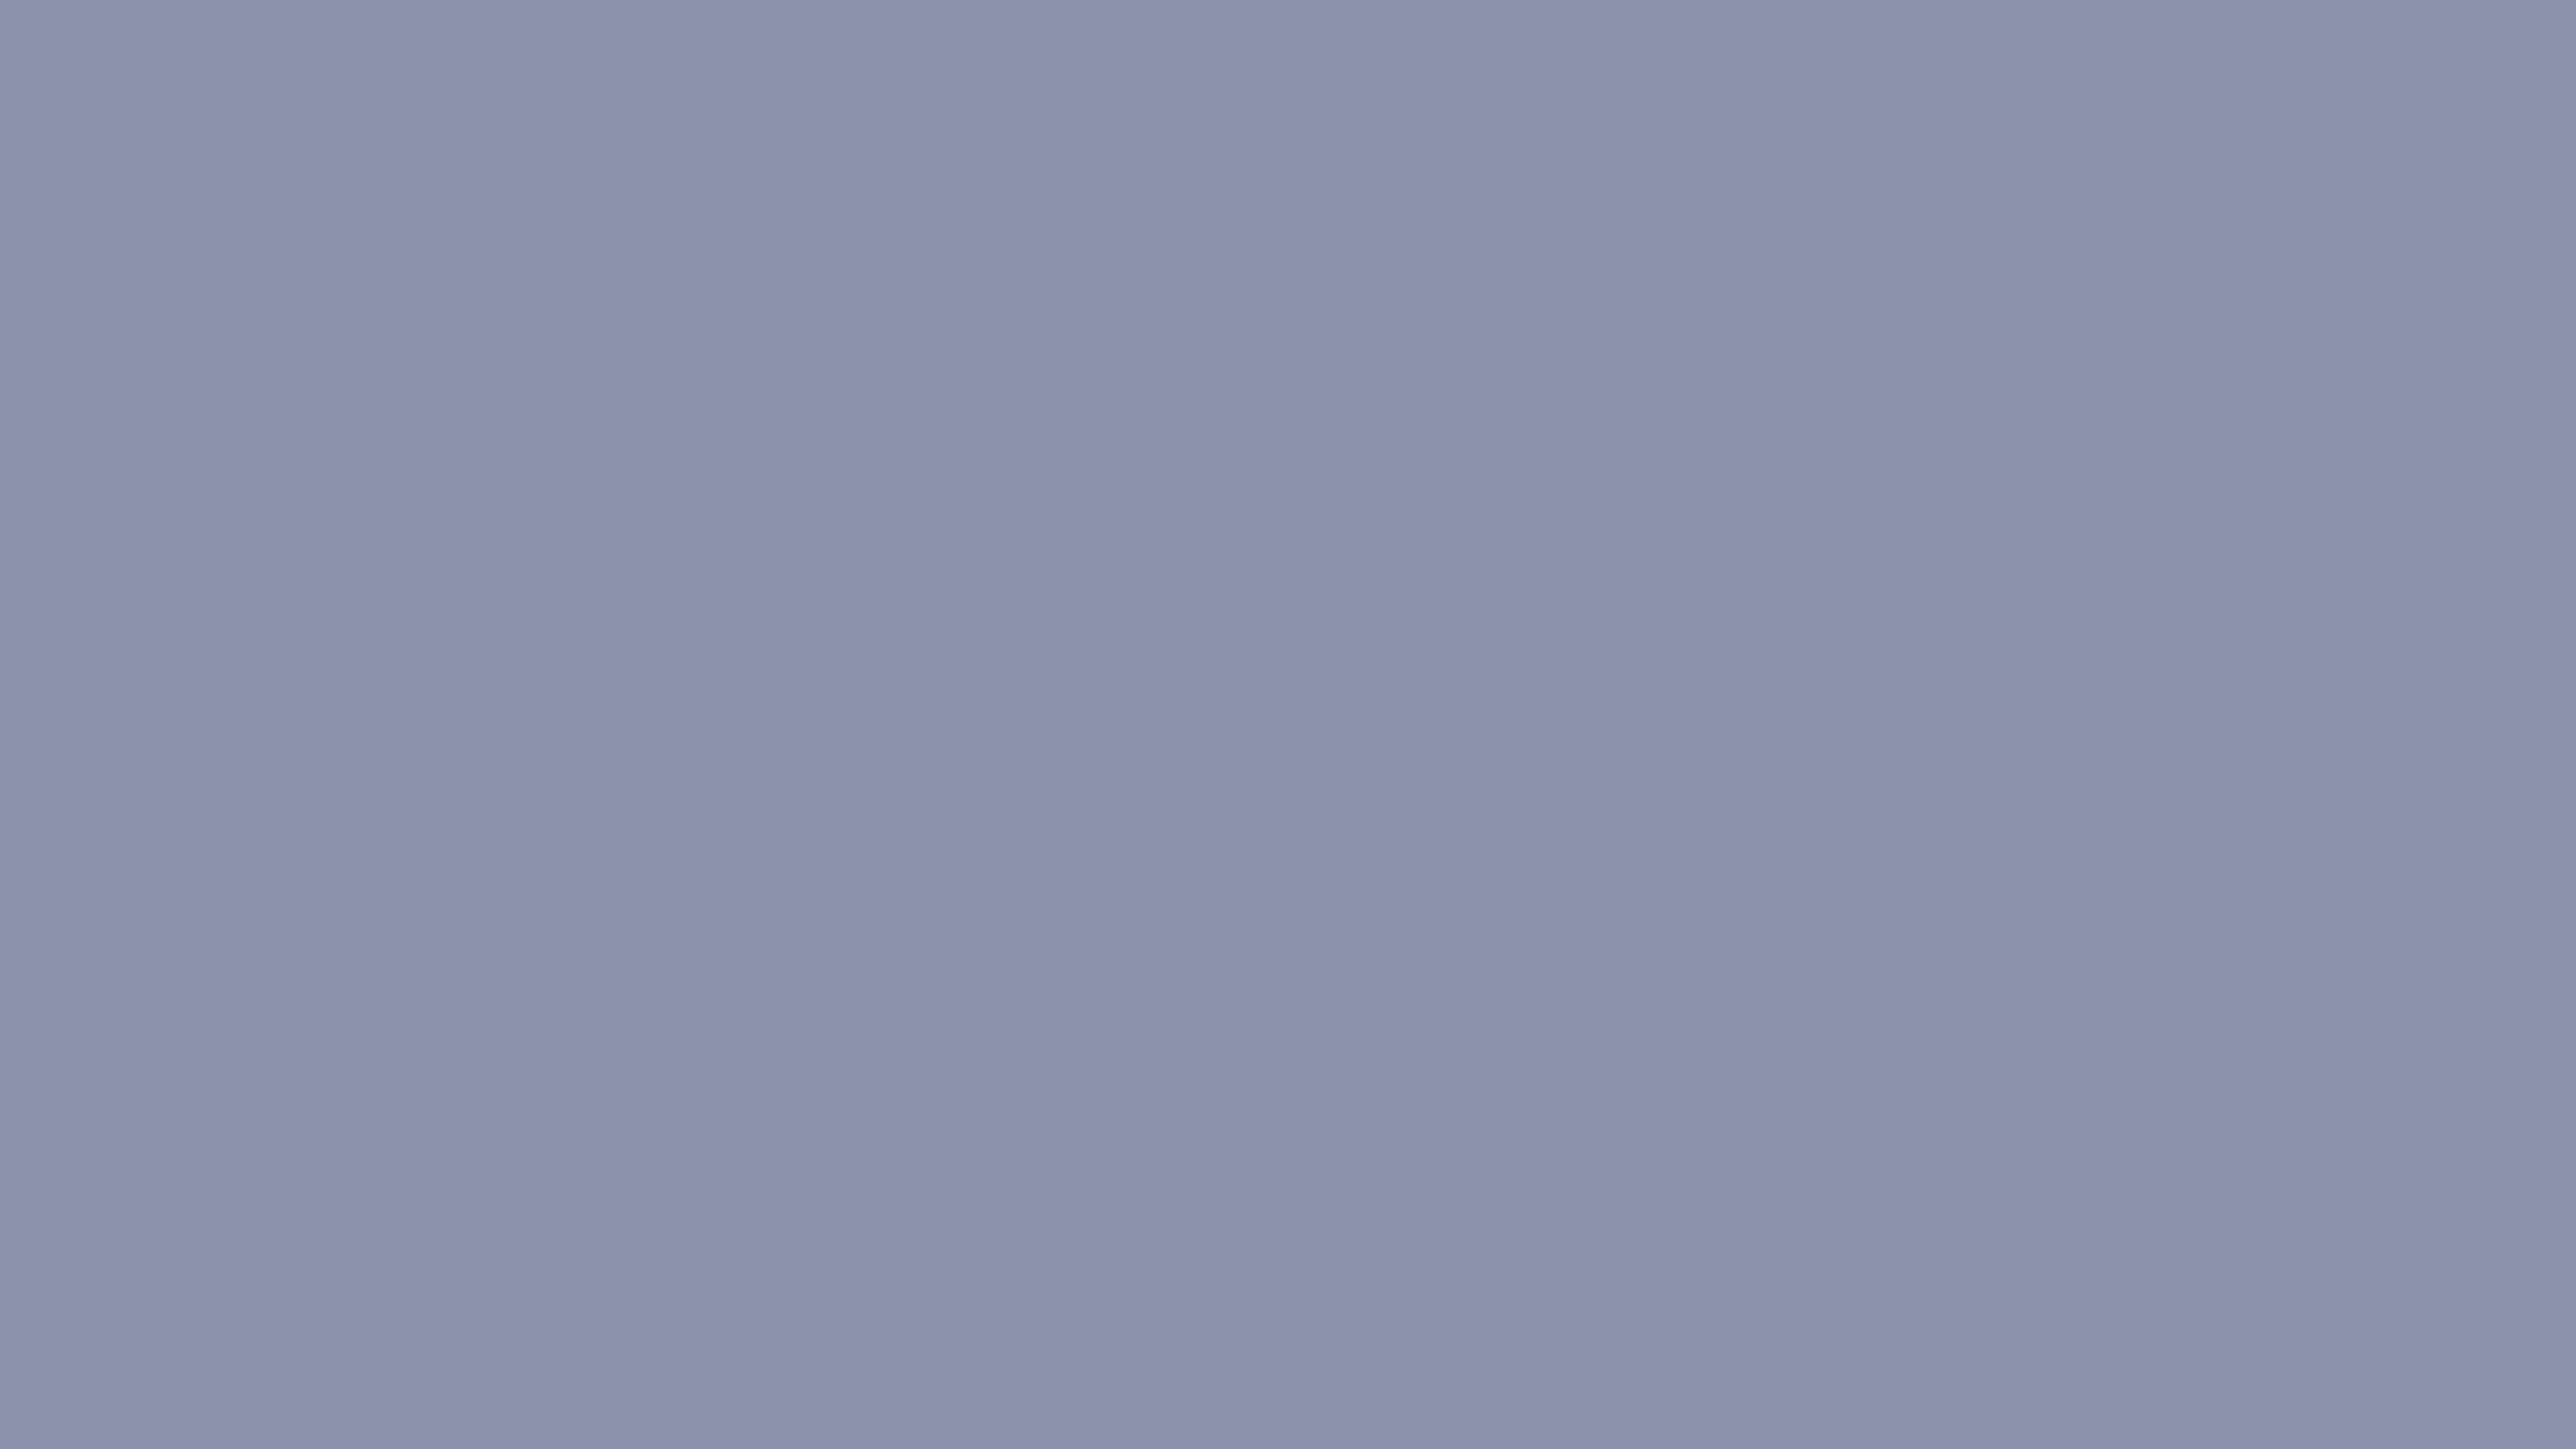 3840x2160 Cool Grey Solid Color Background